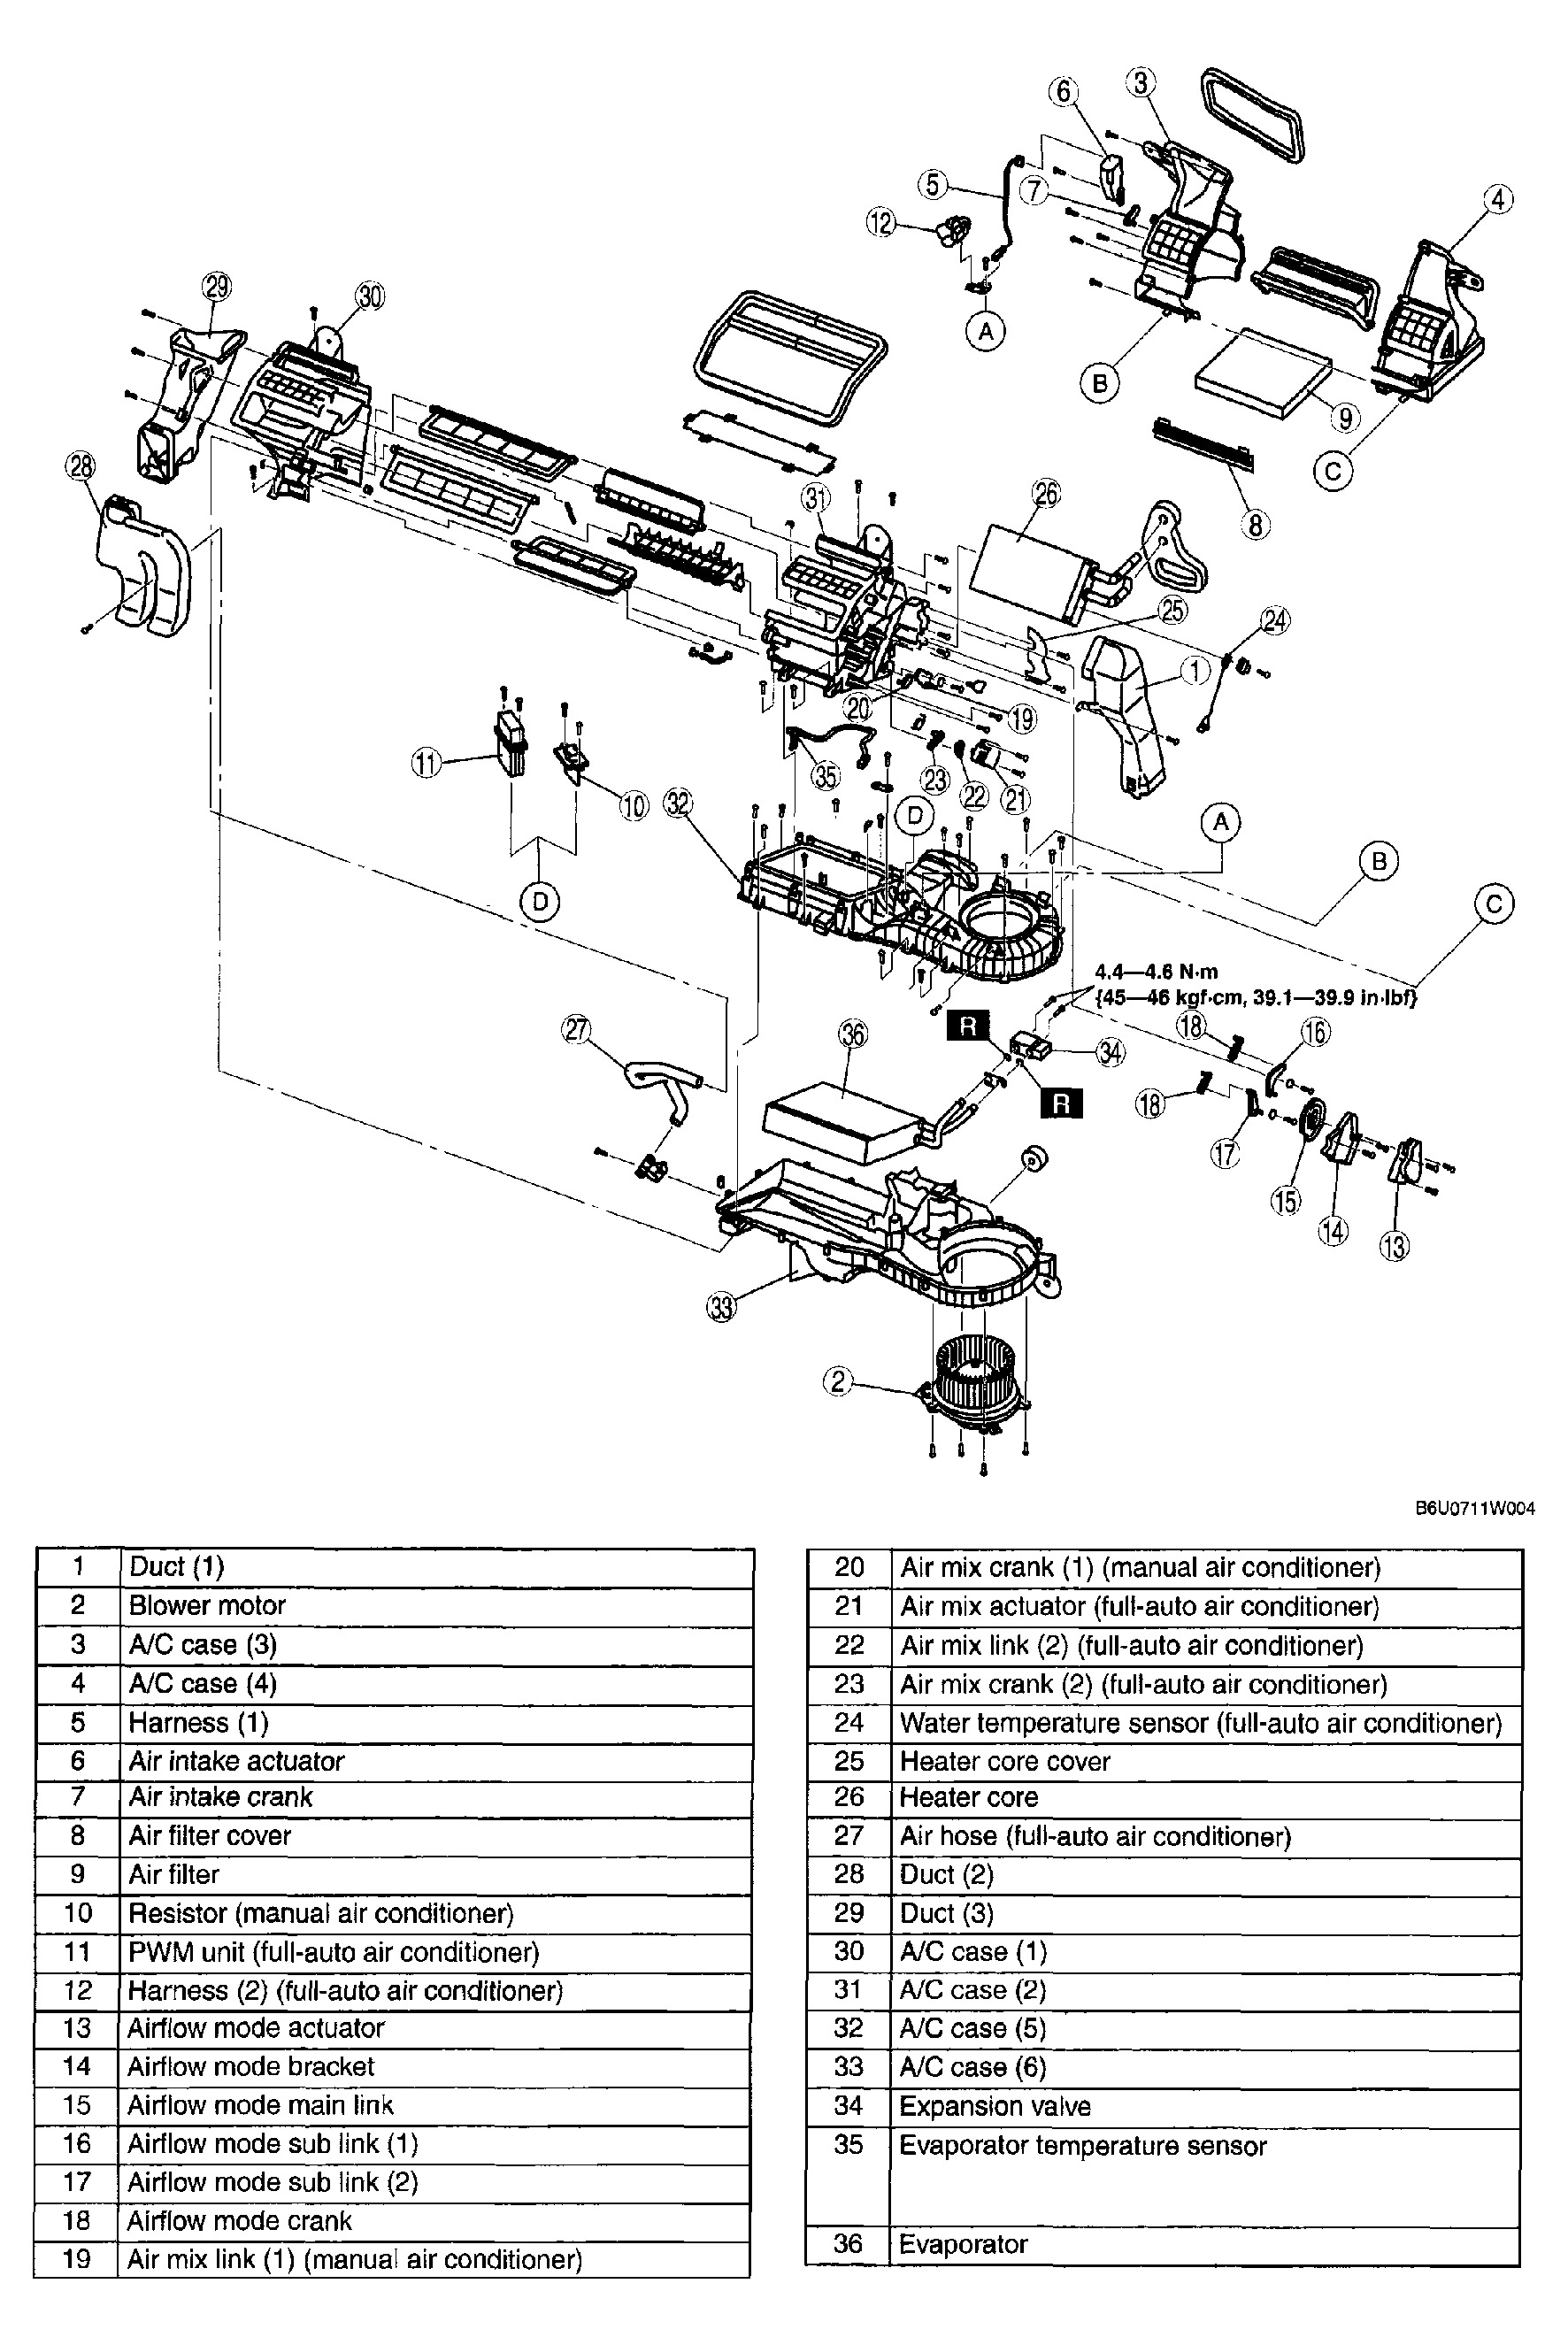 1993 Suzuki Swift Fuse Box. Suzuki. Auto Fuse Box Diagram